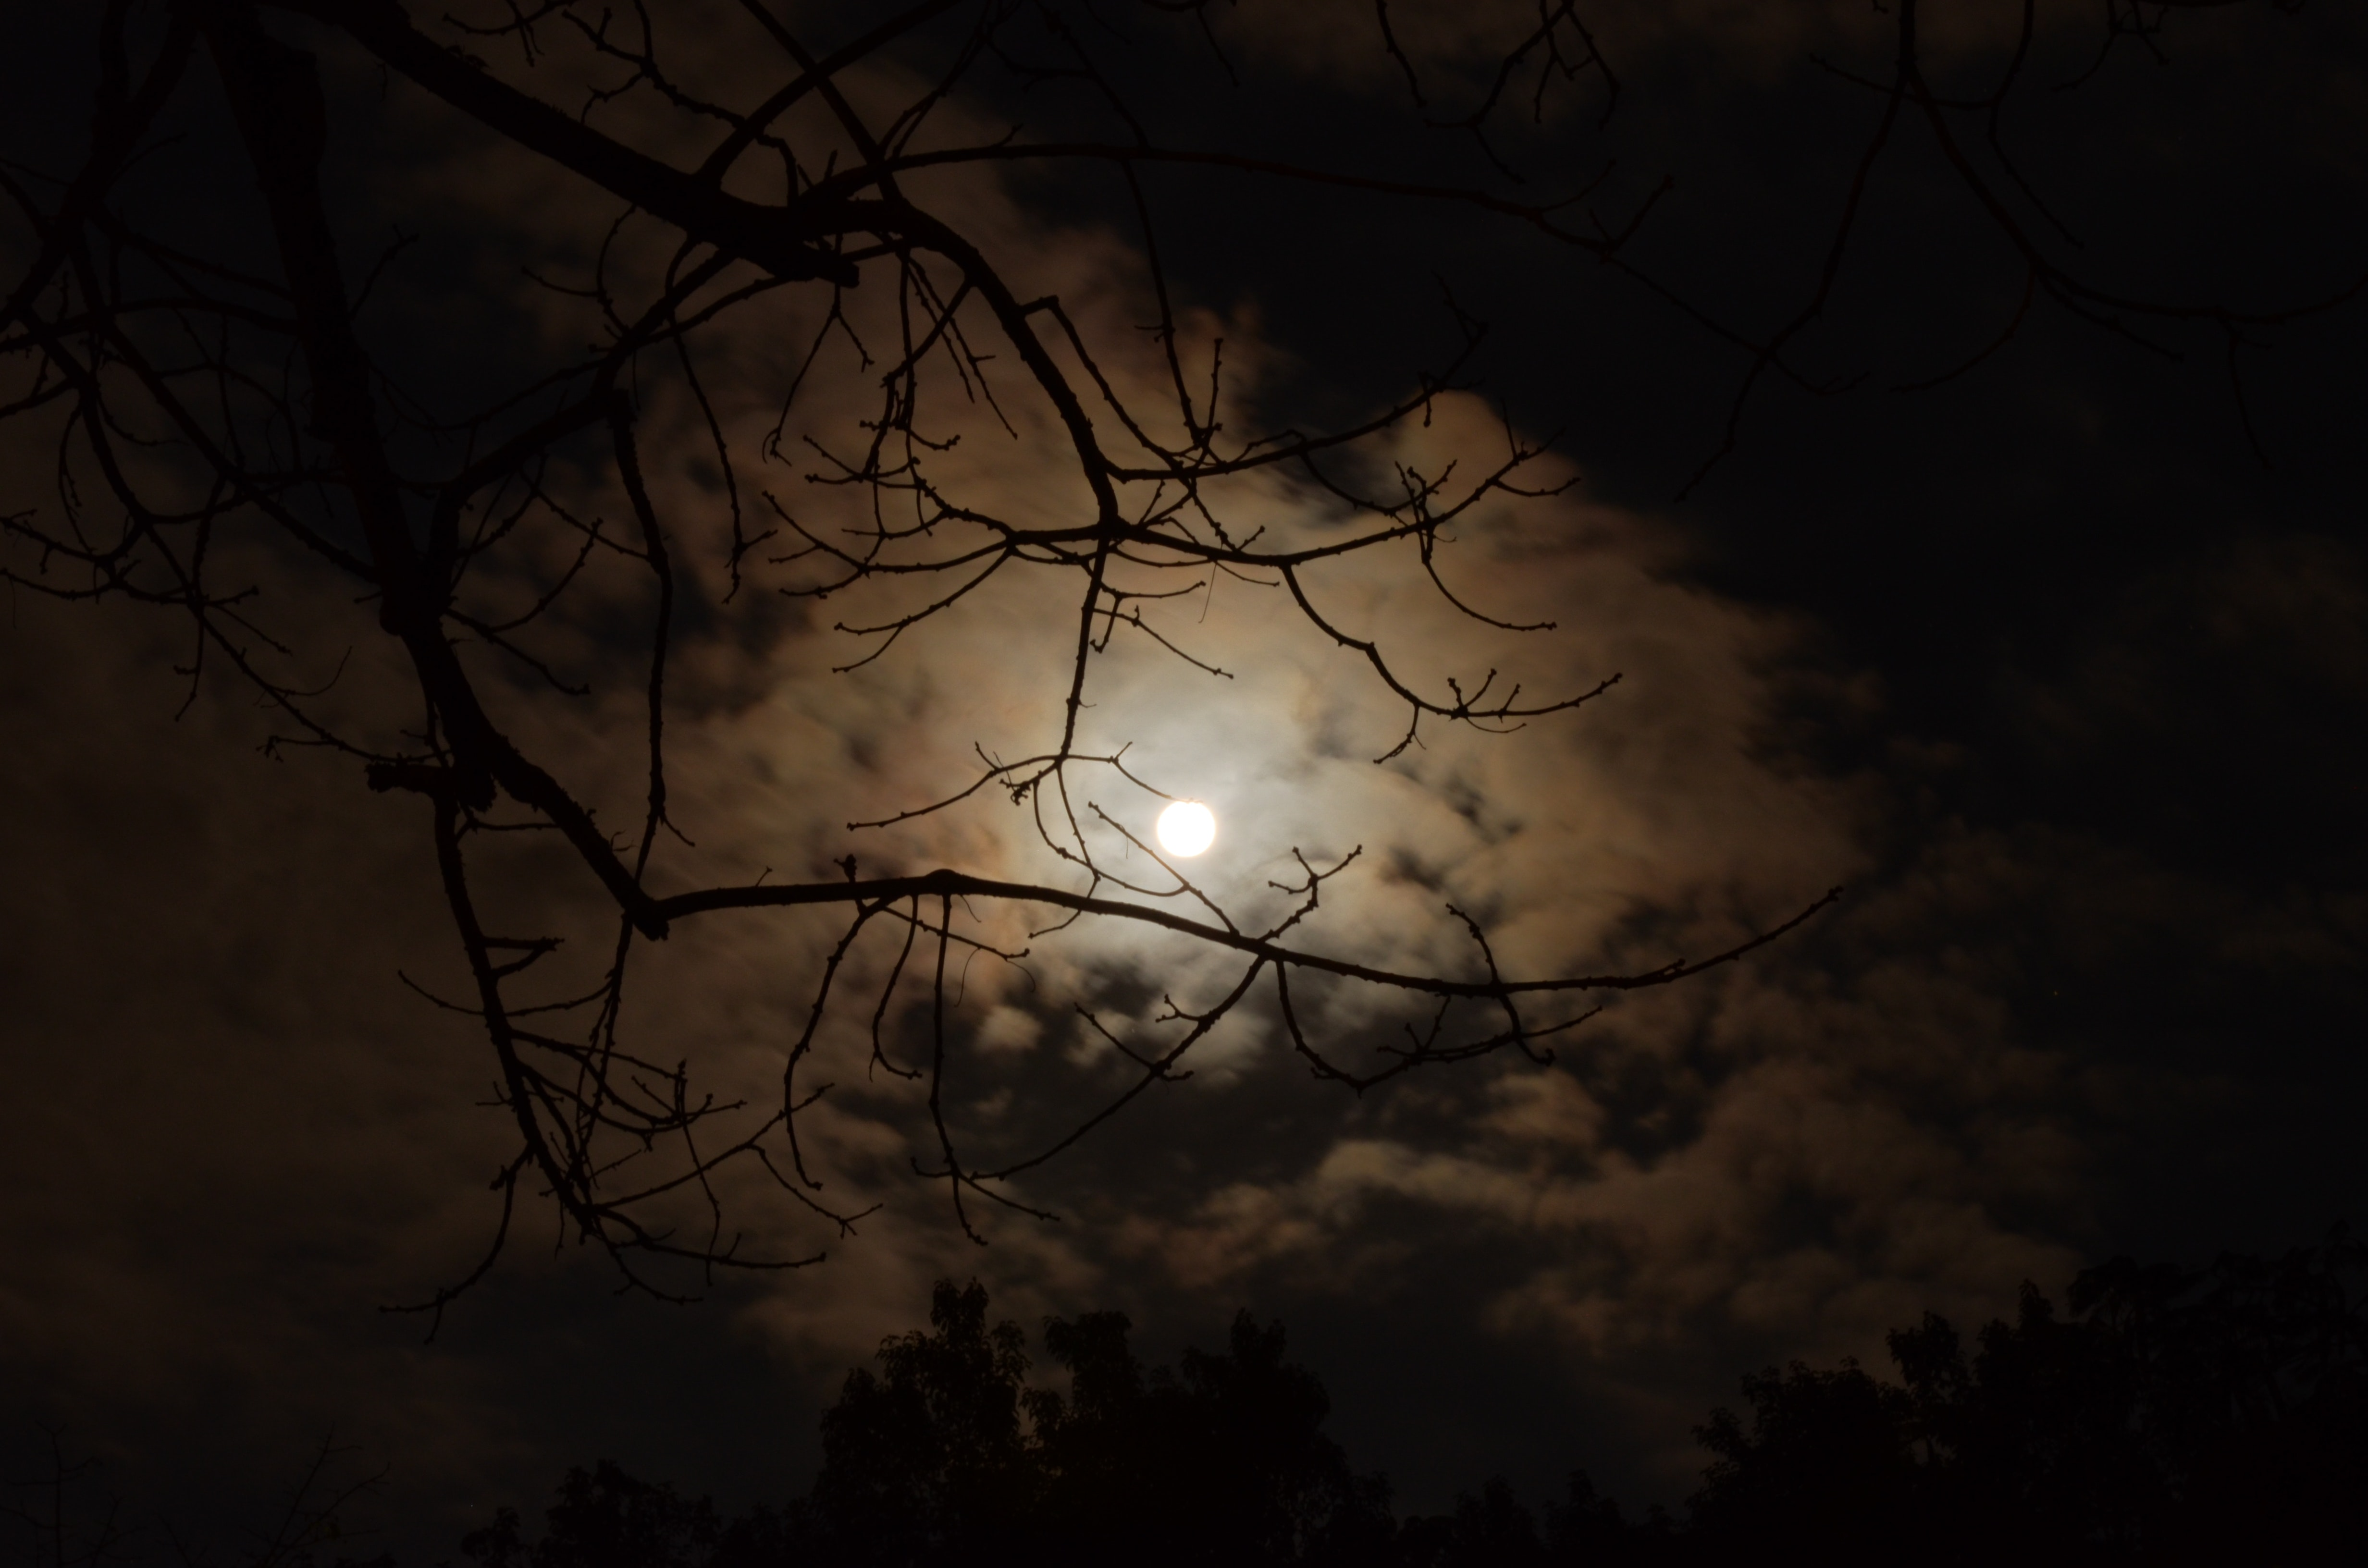 Silhouette of tree branch under white cloudy skies during nighttime photo